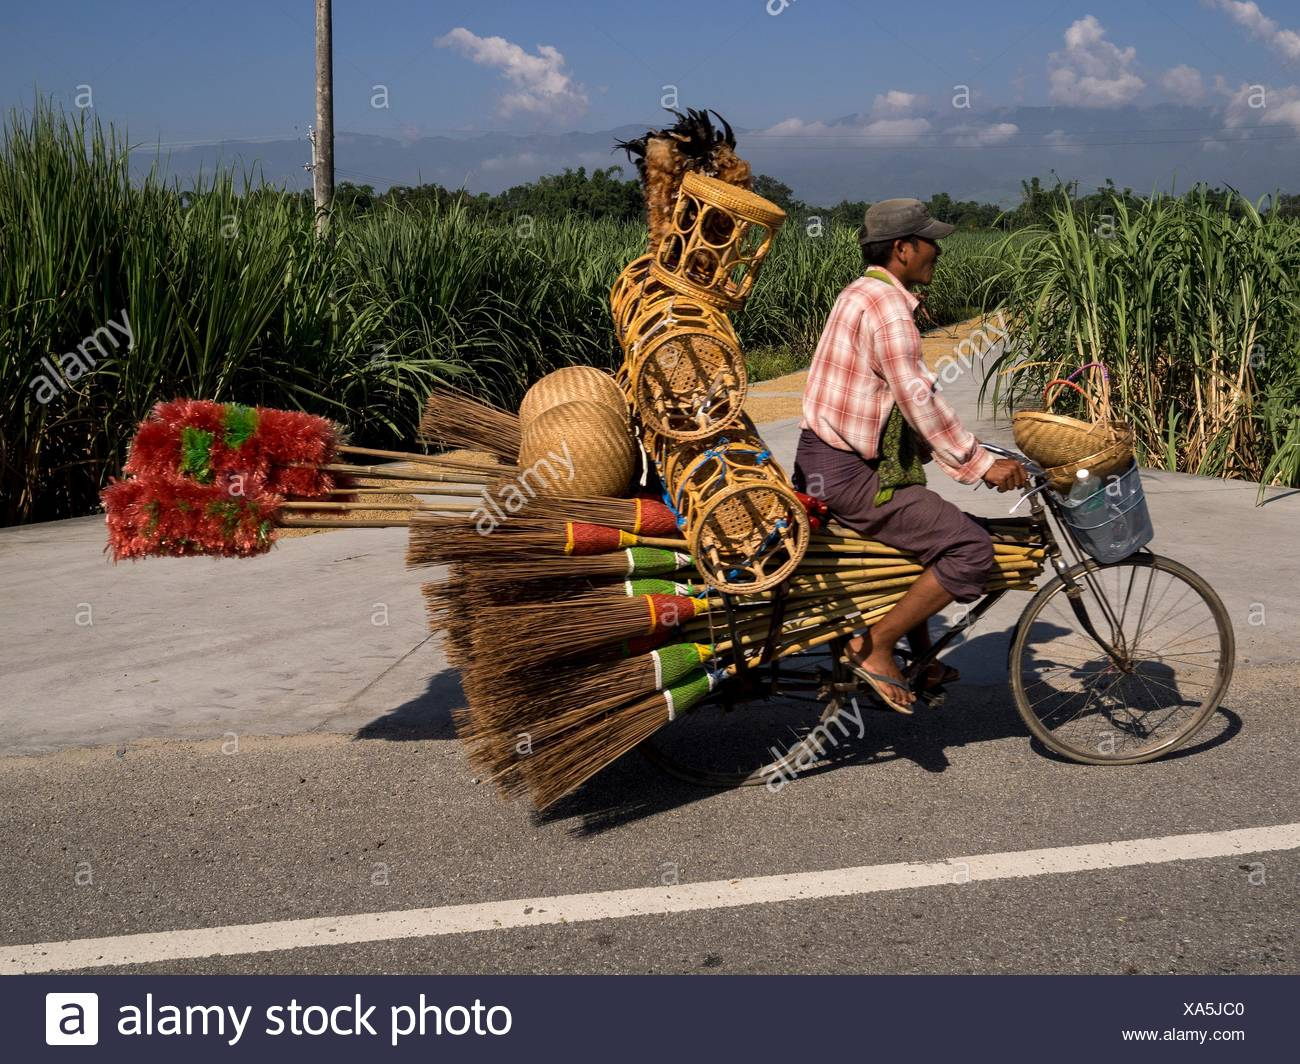 Bicycle baskets immagini & bicycle baskets fotos stock alamy